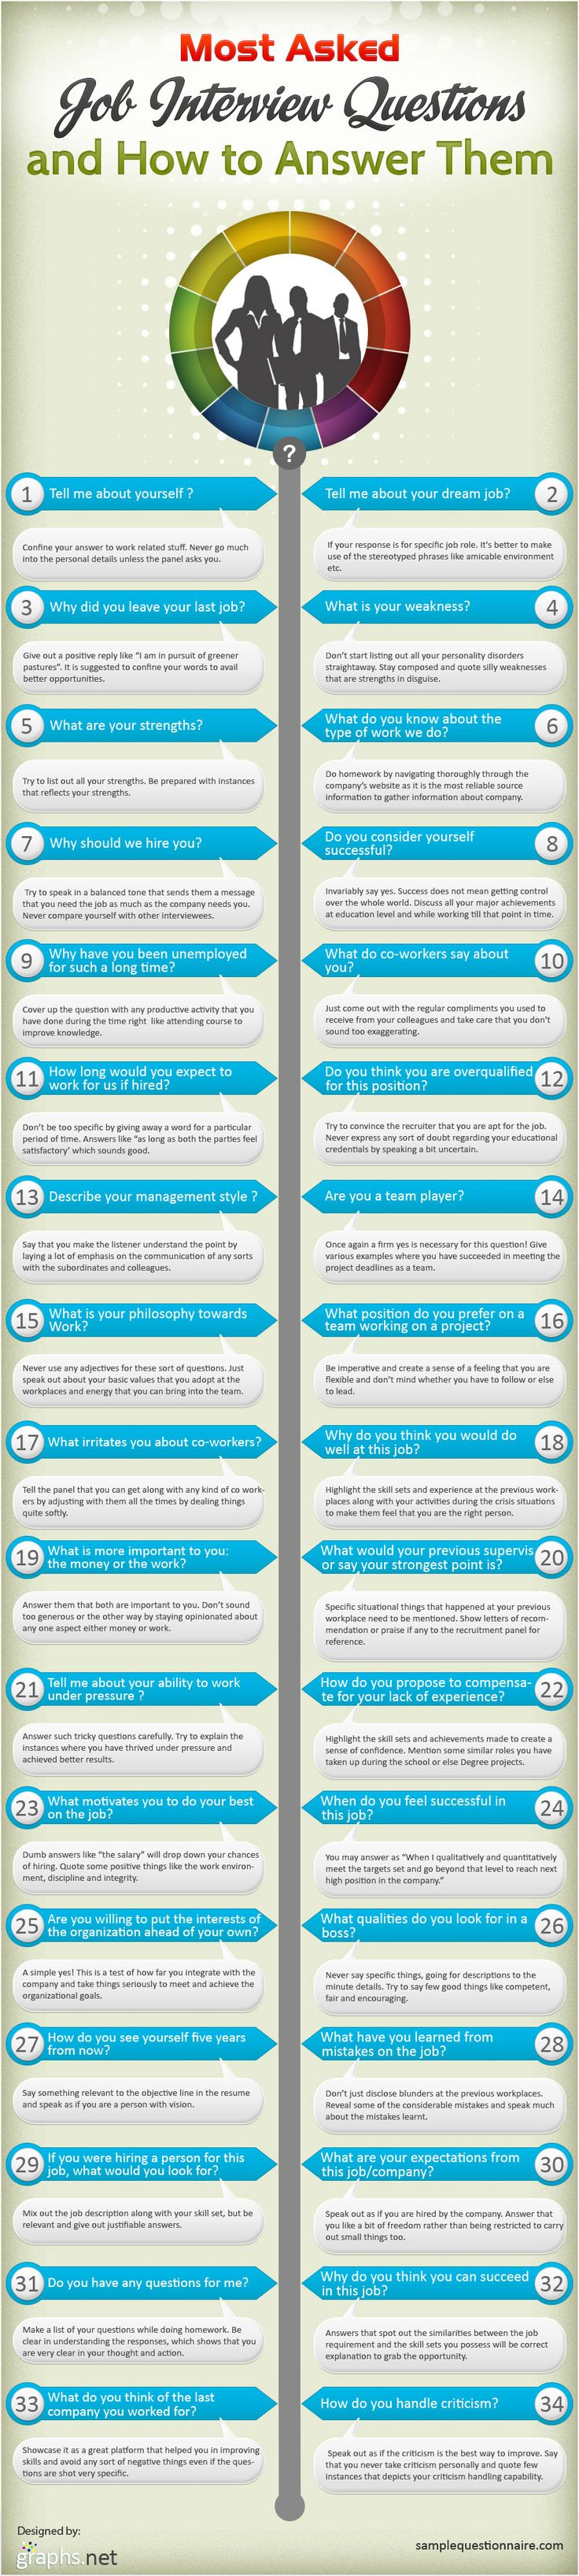 Most asked job interview questions | jobhunting interview career minded, job hunting,